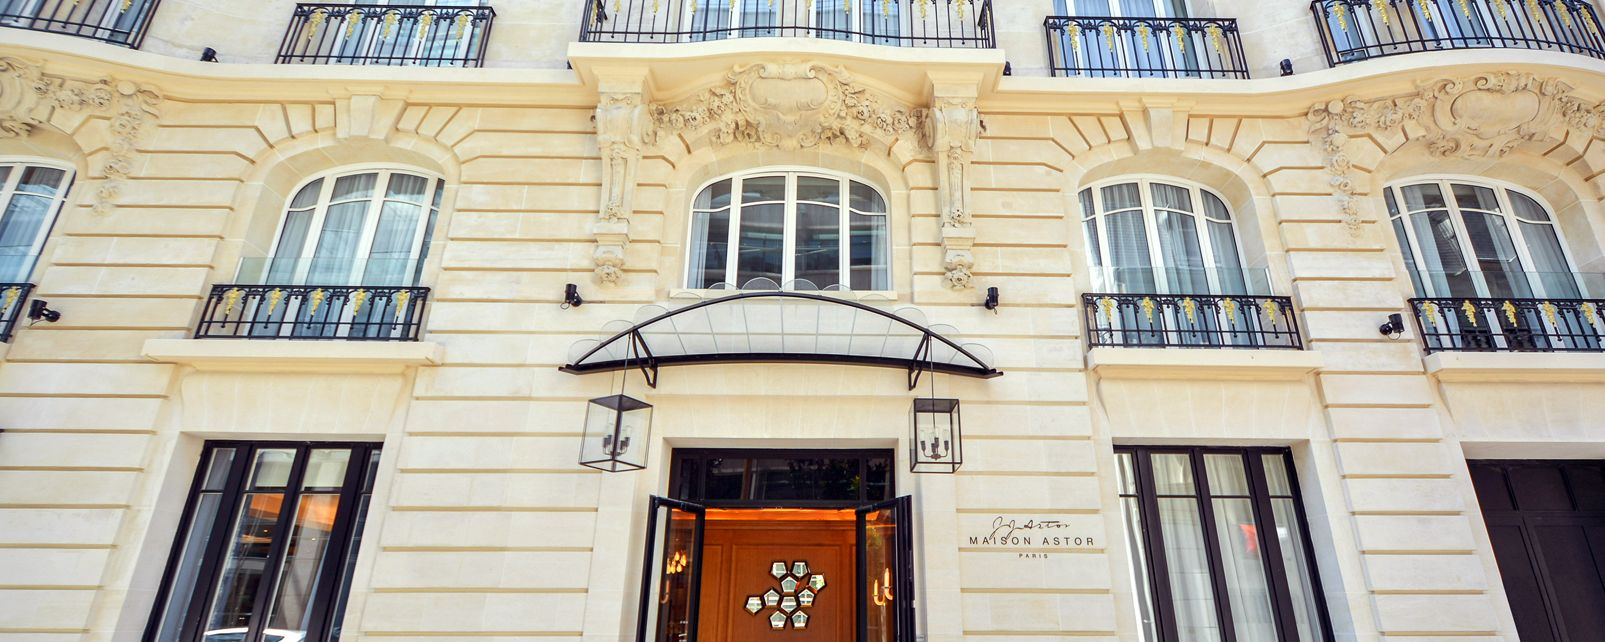 Hotel Astor St Honore Paris